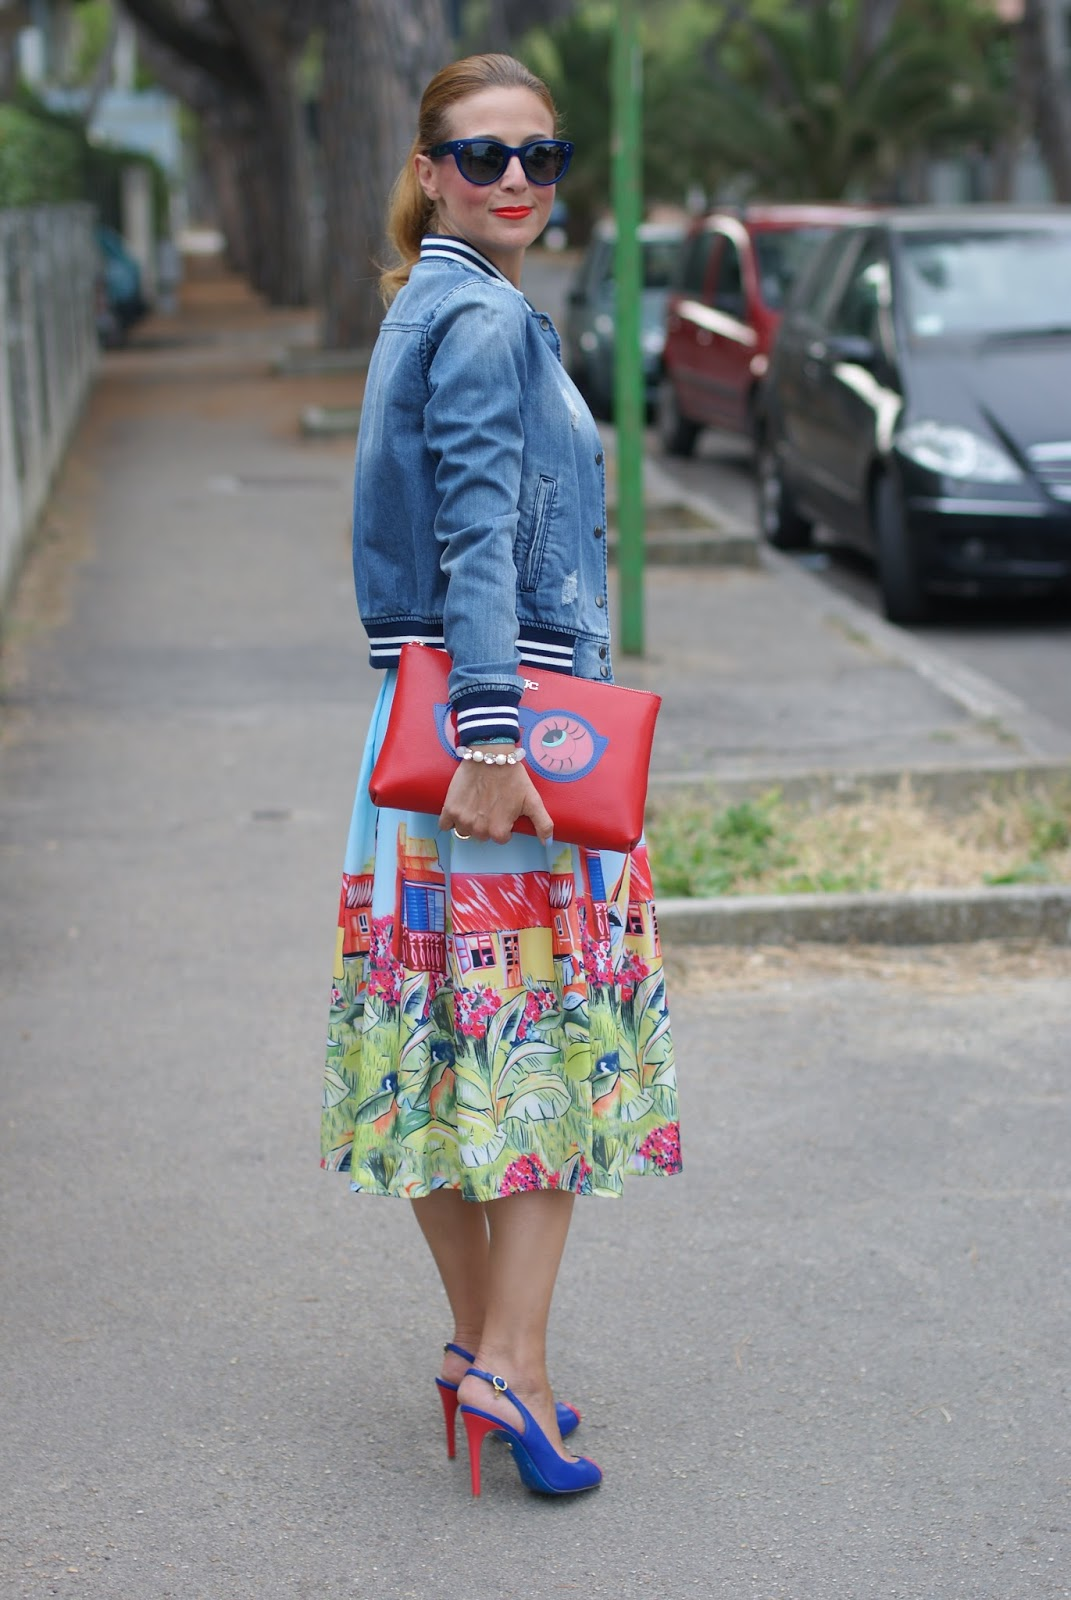 SimonaB Bijoux, Zaful midi skirt and Jack y Celine clutch on Fashion and Cookies fashion blog